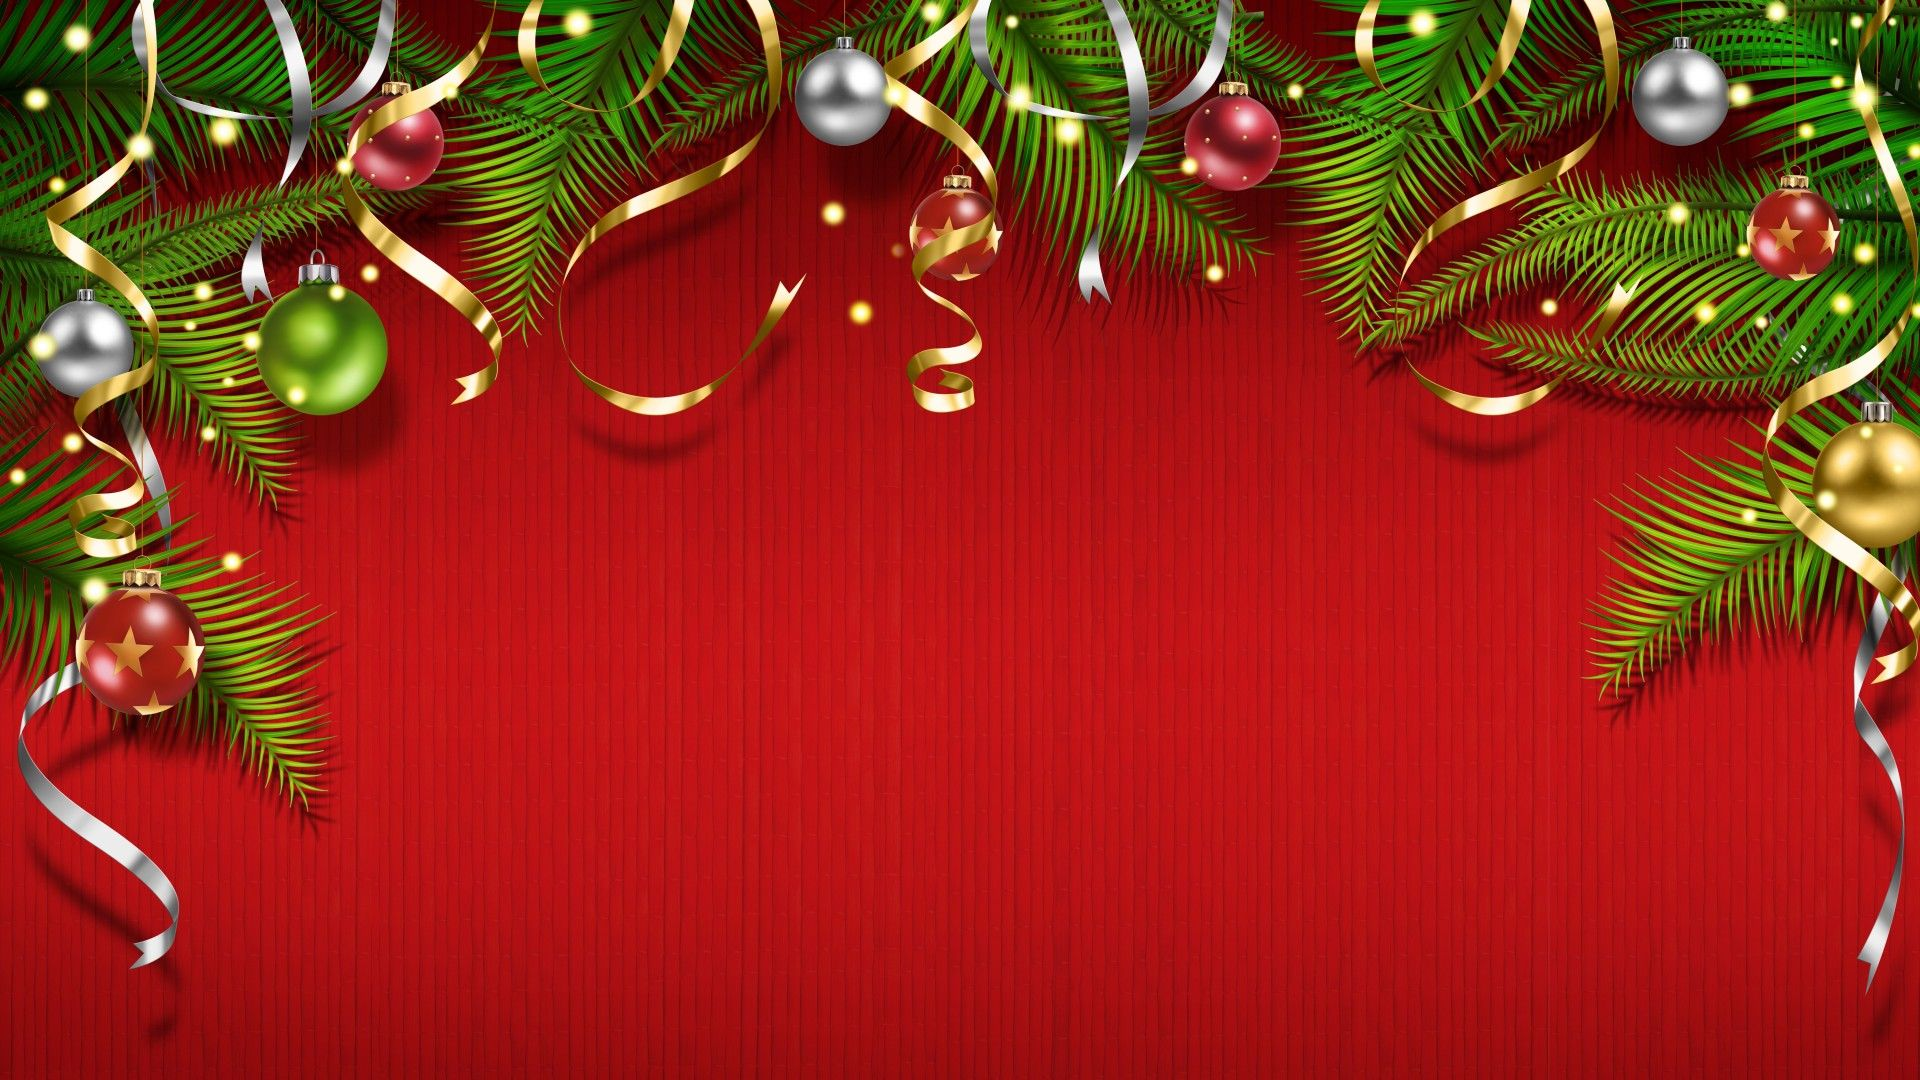 Christmas Decorations Hd Wallpapers Backgrounds Covers